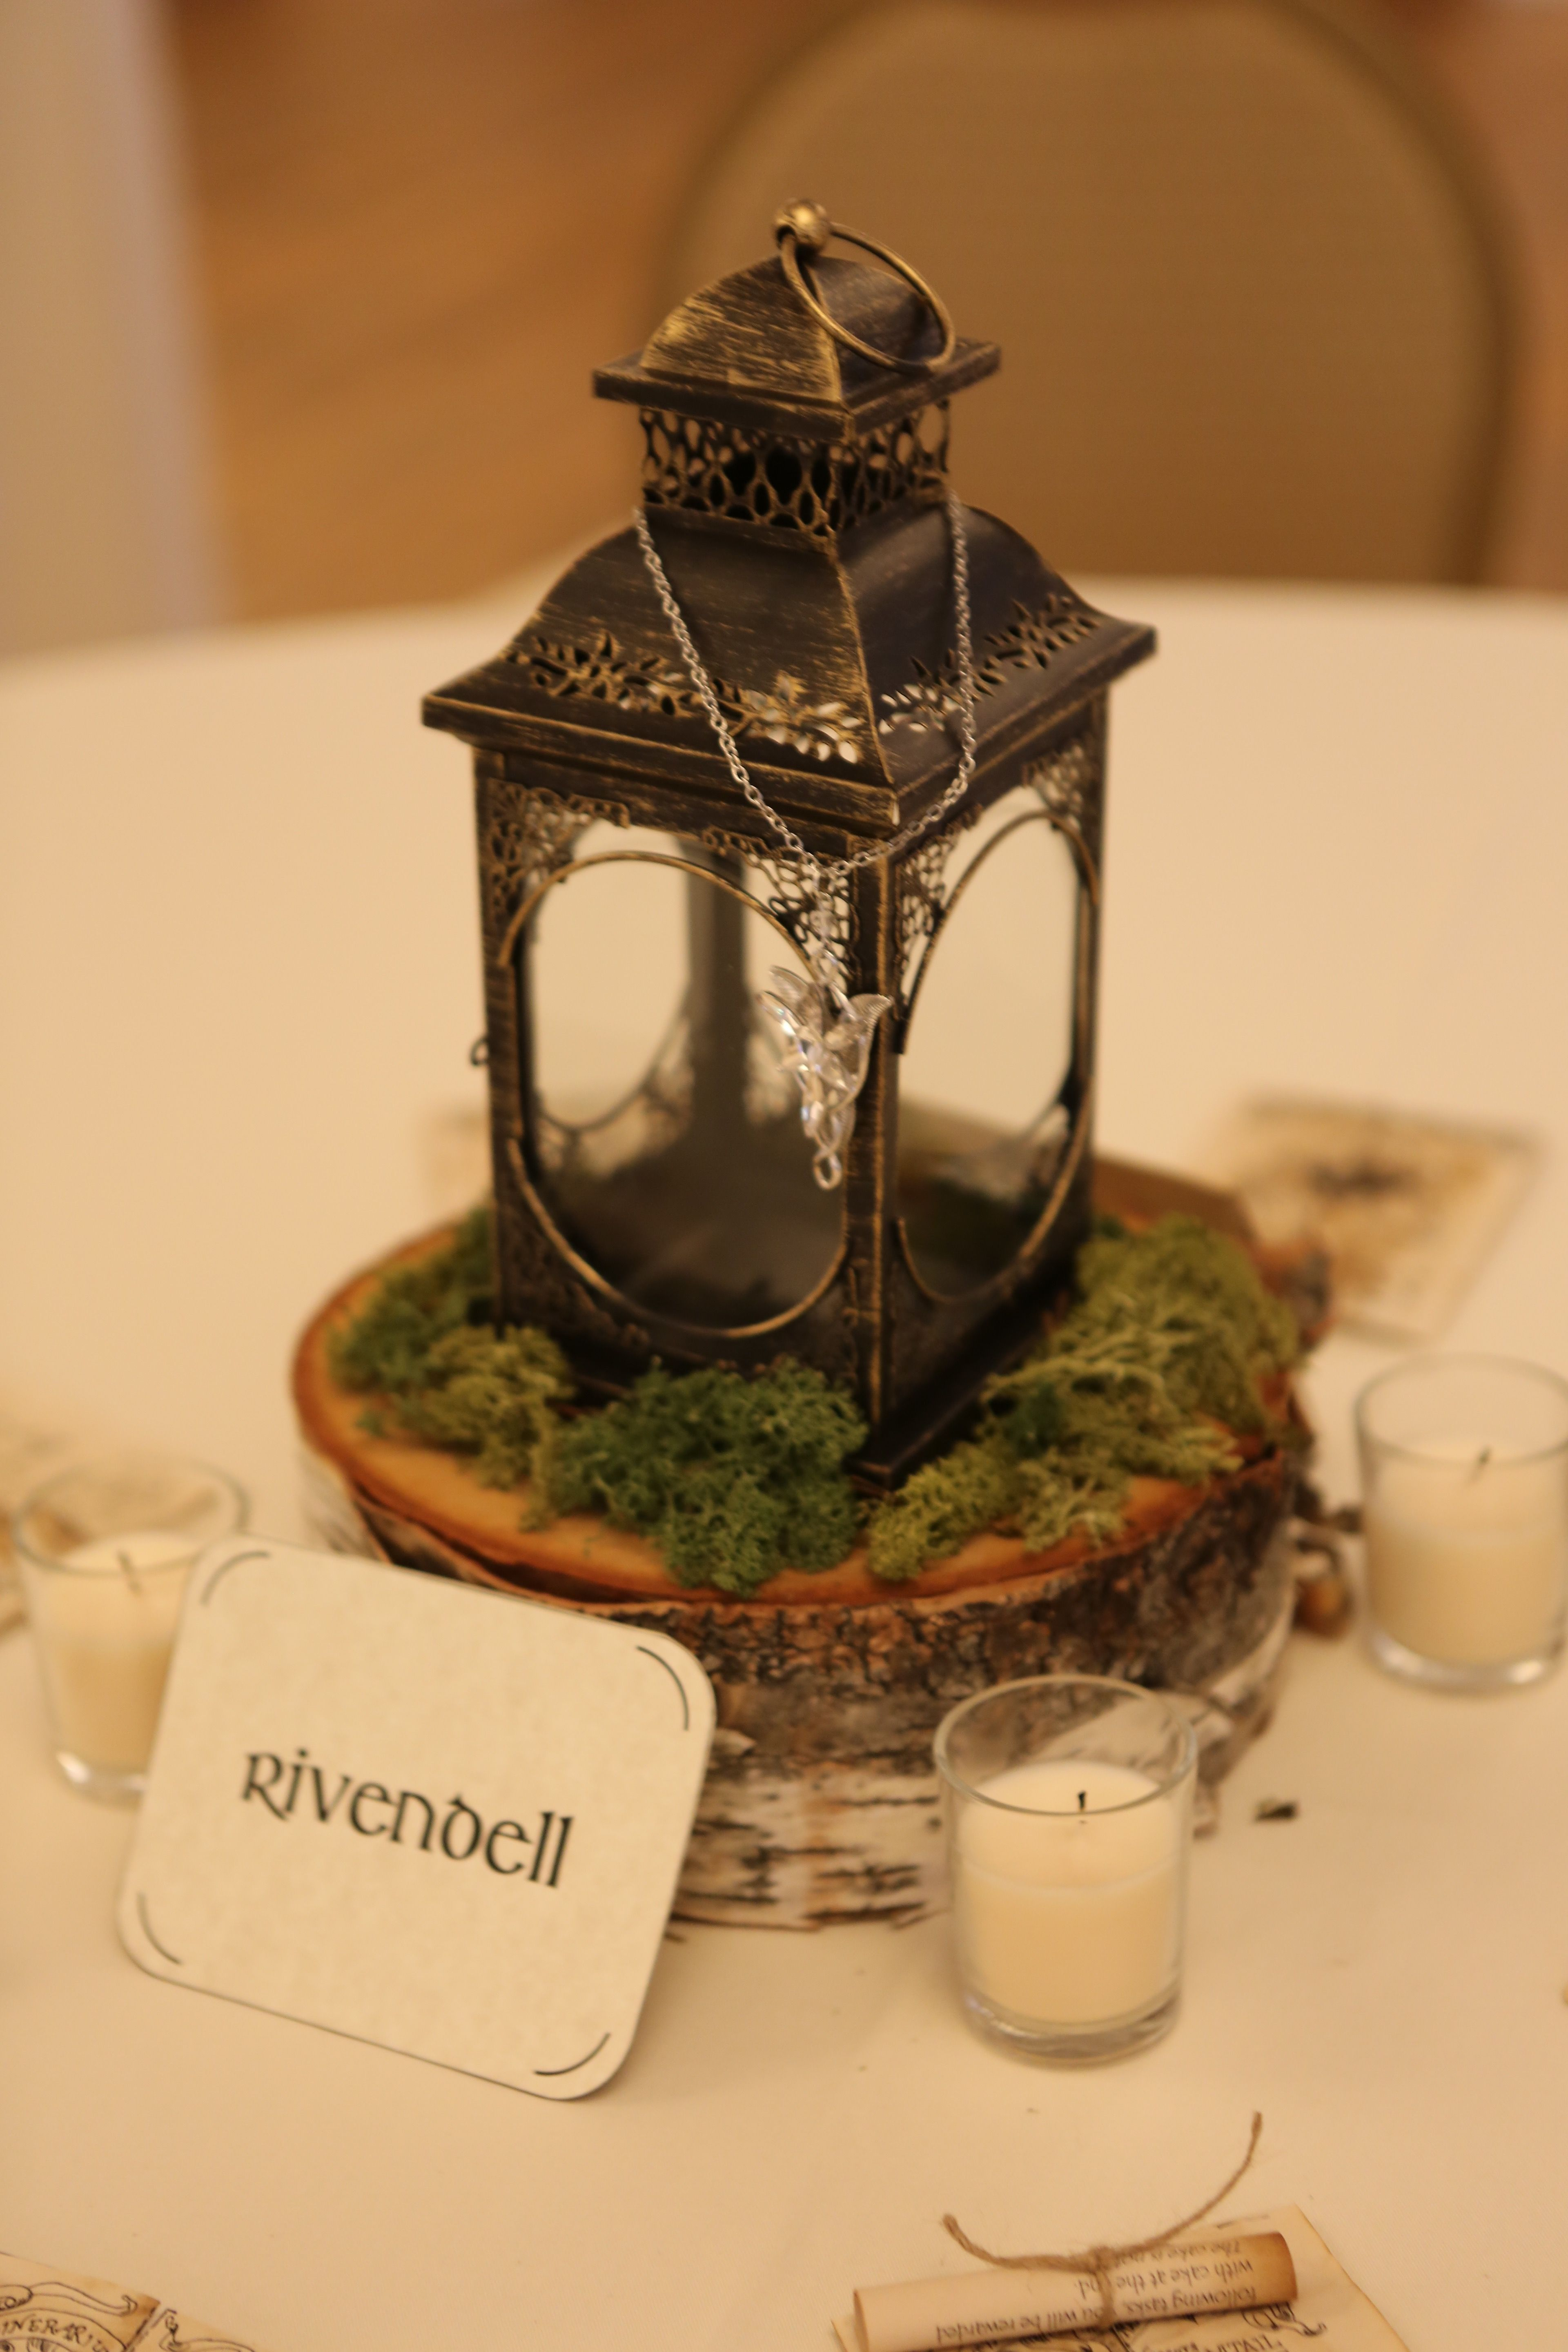 Rivendell Lord of the Rings table centerpiece